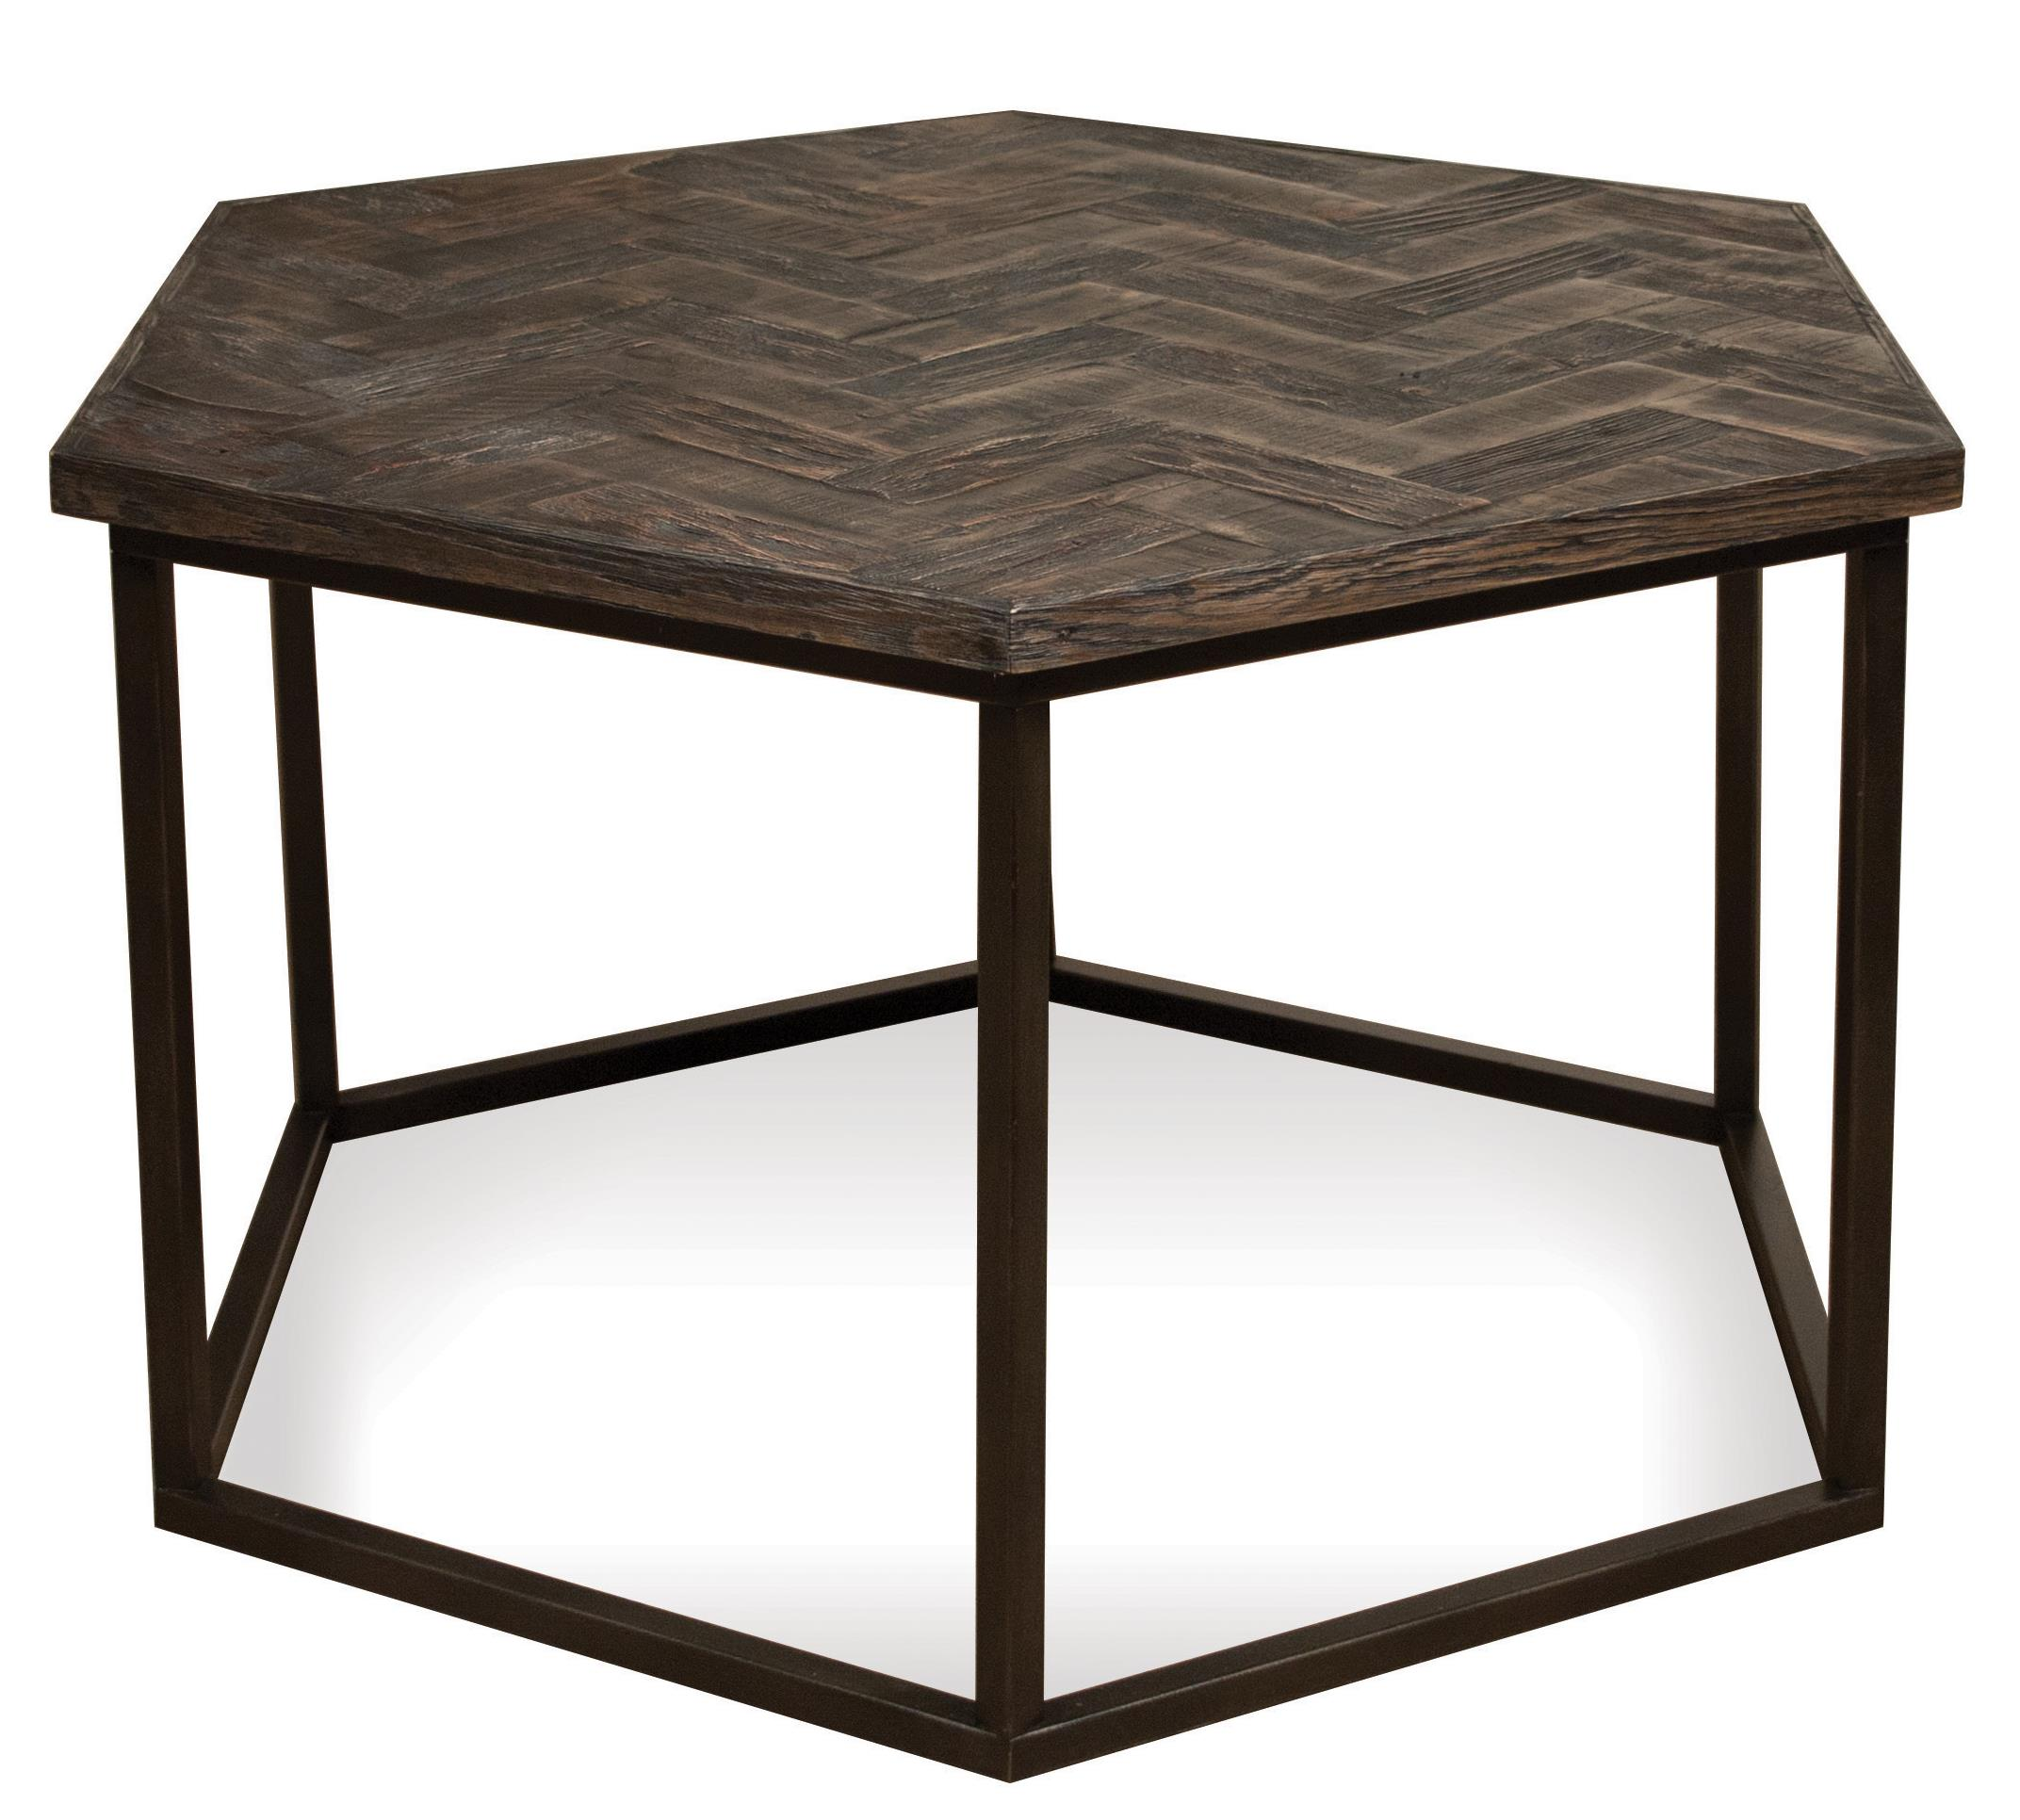 Riverside Furniture Chevron Hexagon Coffee Table - Item Number: 73101